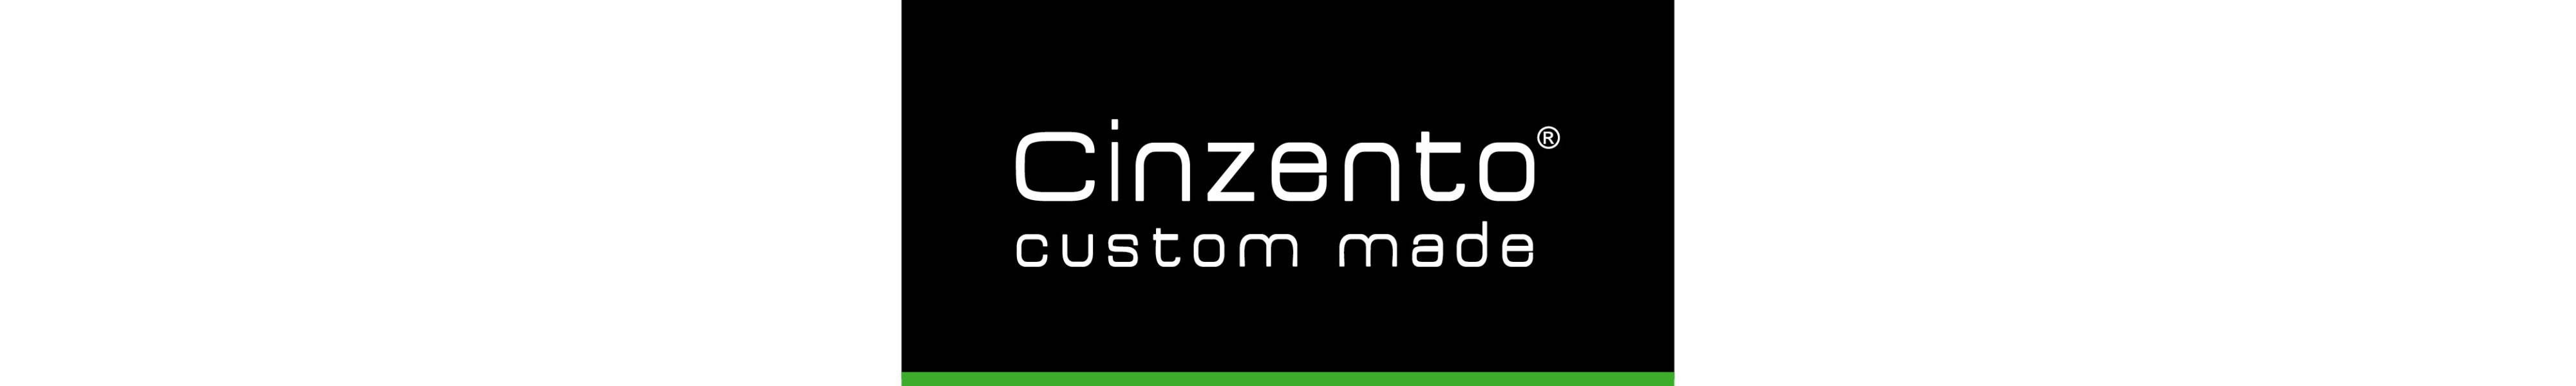 Cinzento Custom Made logo